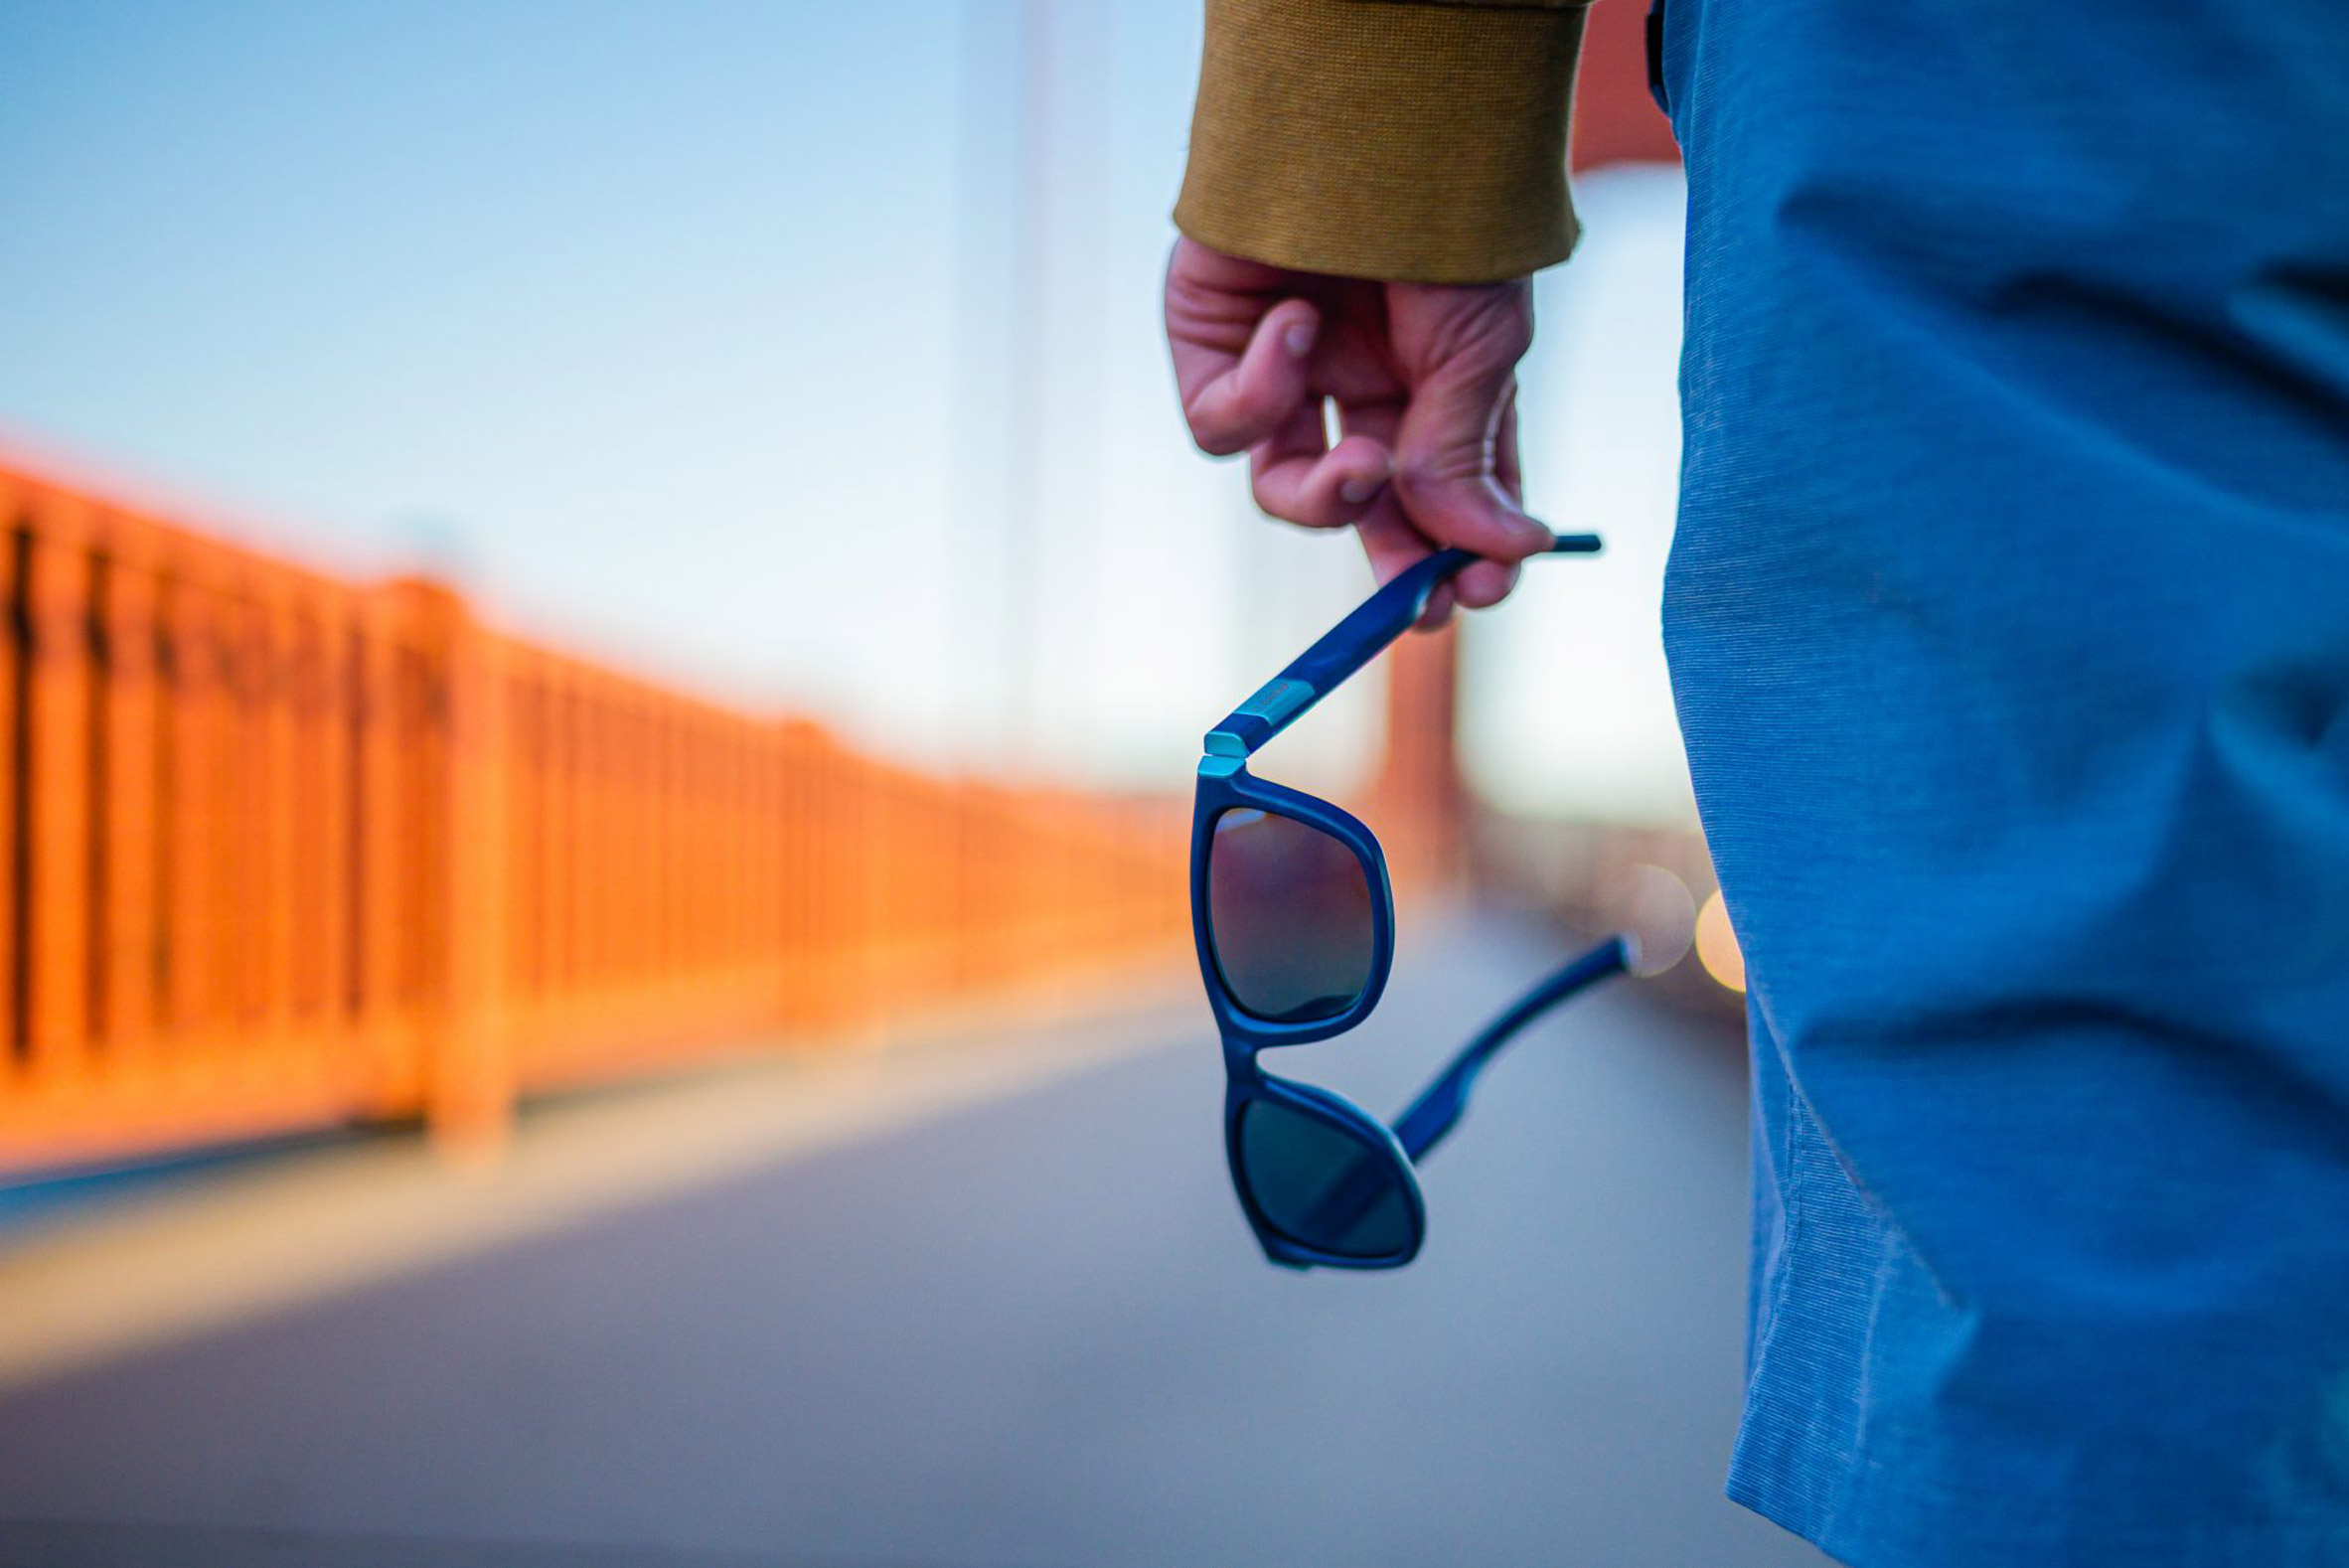 Yves Béhar makes sunglasses from recycled marine plastic